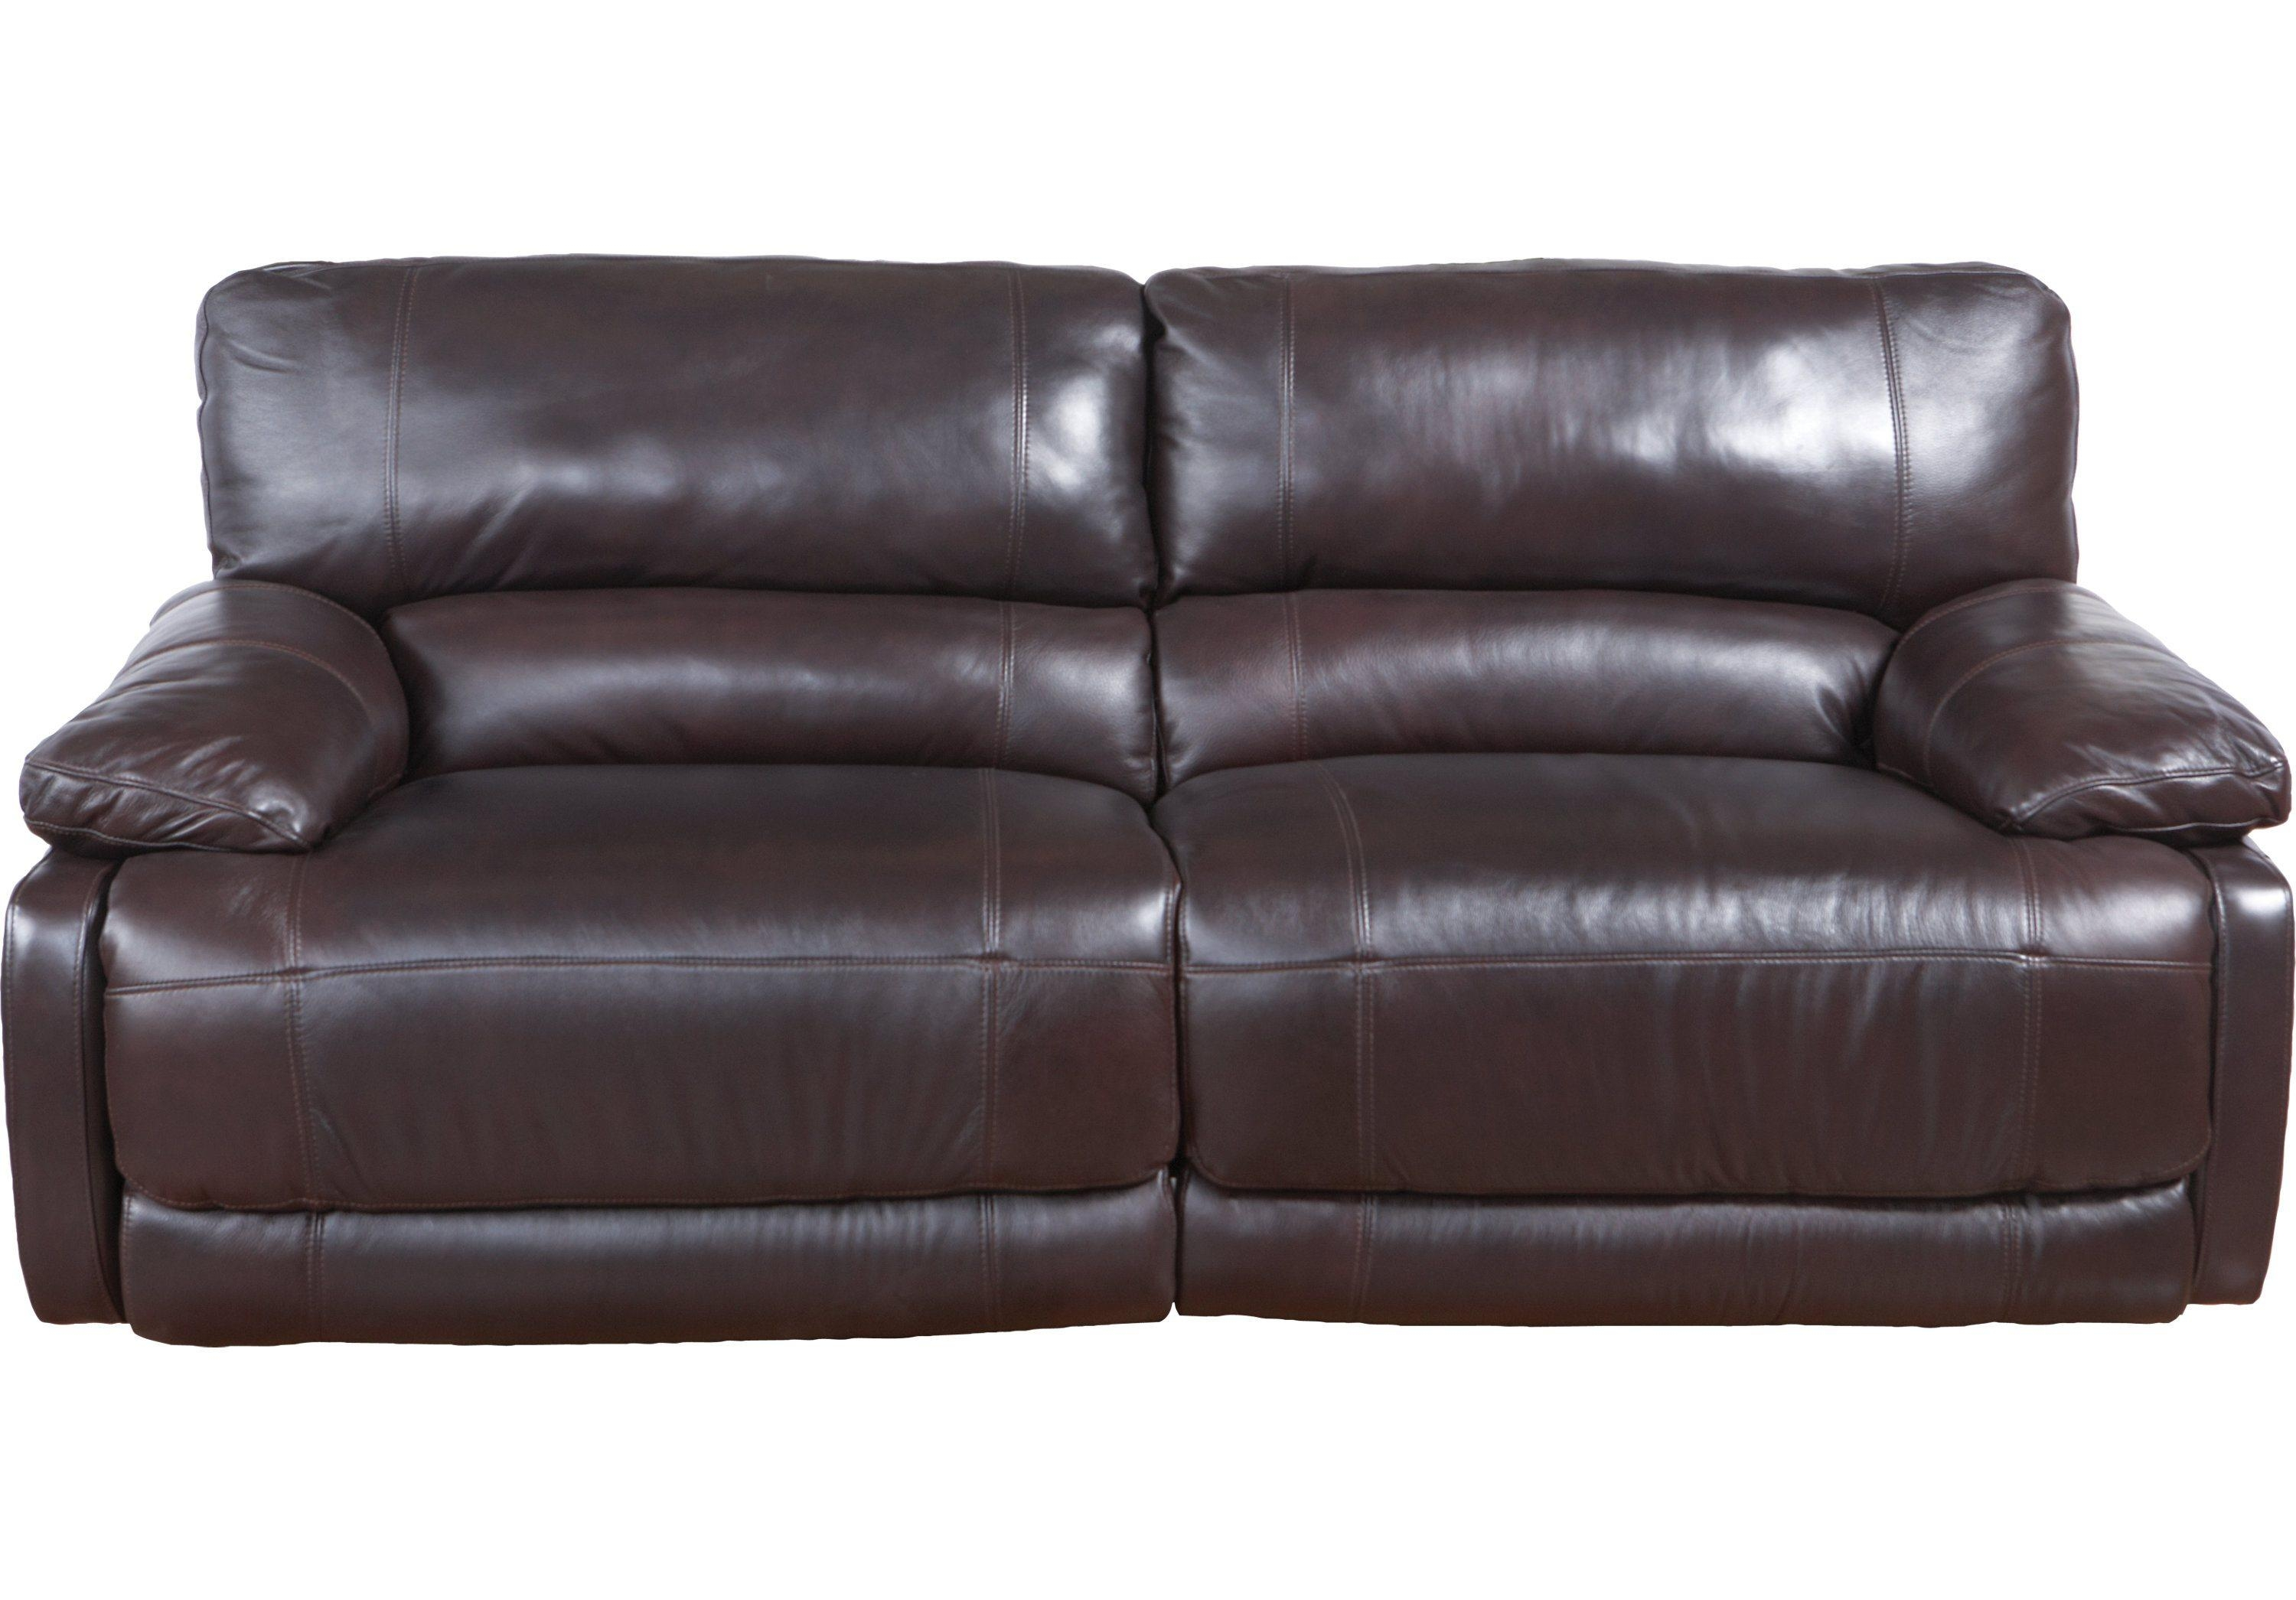 Sofas Center : Cindy Crawford Sectional Metropolis Sofa Sleeper Intended For Cindy Crawford Sofas (View 13 of 20)